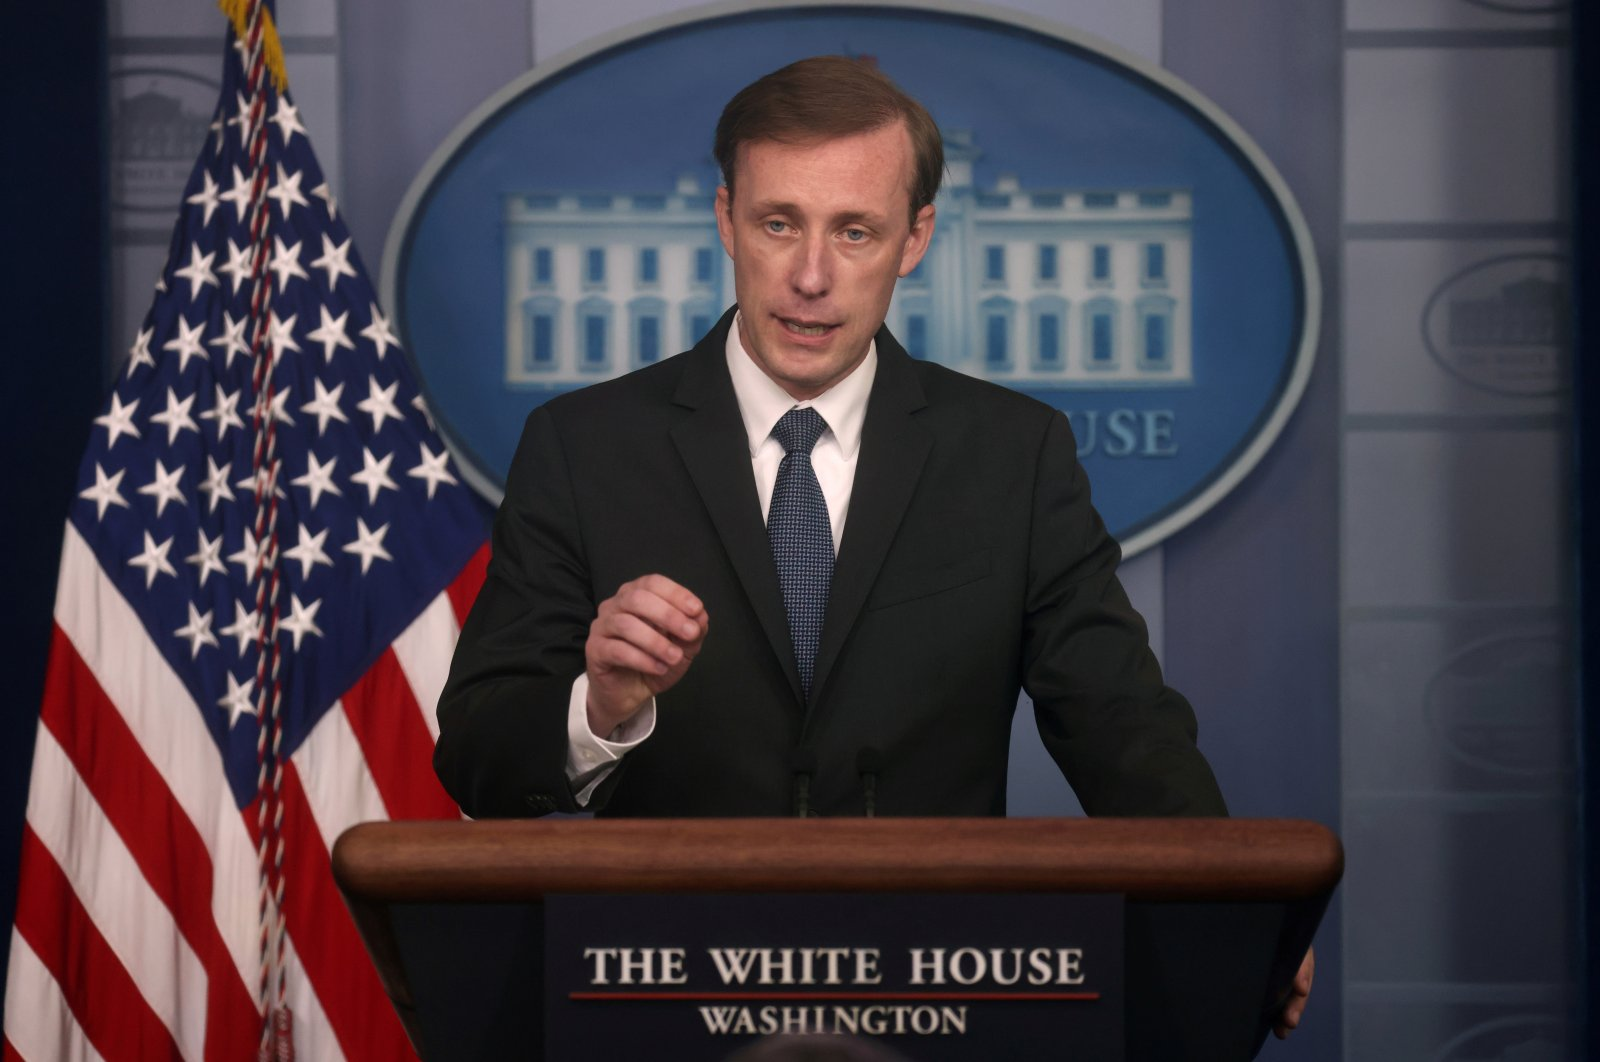 White House National Security Adviser Jake Sullivan takes questions during a press briefing at the White House in Washington, U.S., June 7, 2021. (REUTERS)